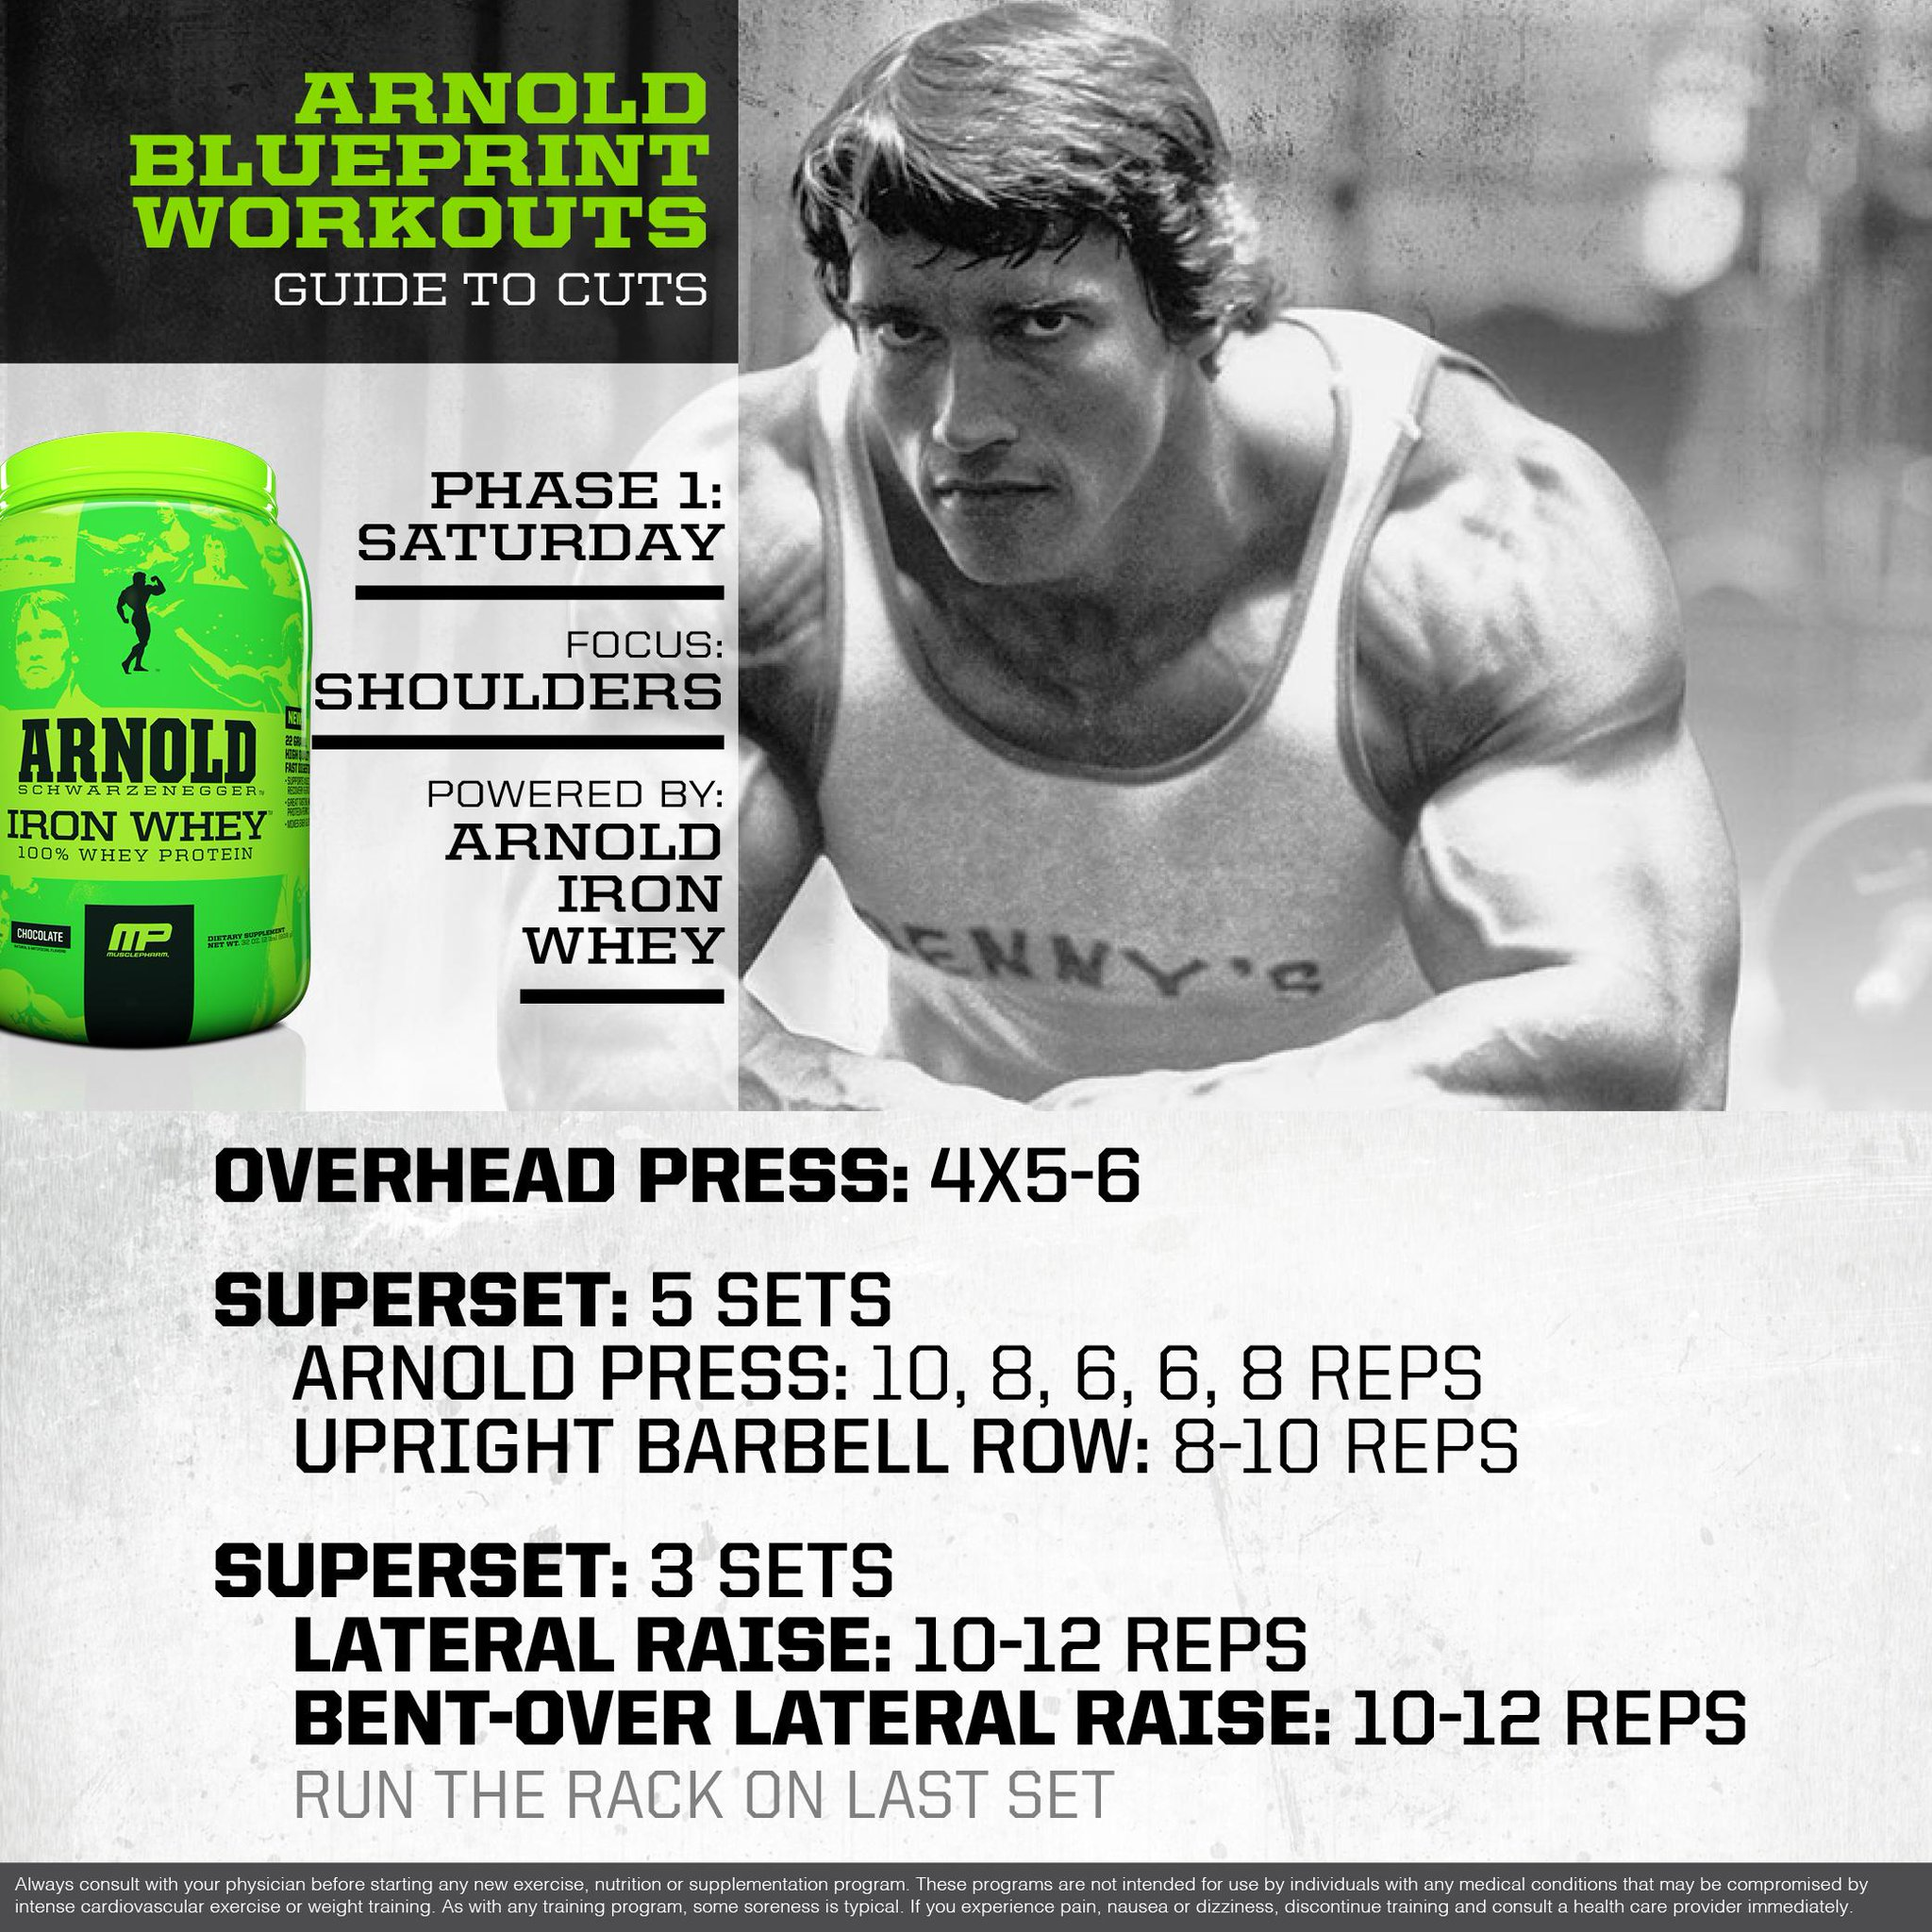 Arnold schwarzenegger muskelpharm blueprint software herunterladen the following are two typical workouts and split structures used by 7 time mr olympia arnold schwarzenegger this arnold schwarzenegger workout variation malvernweather Images